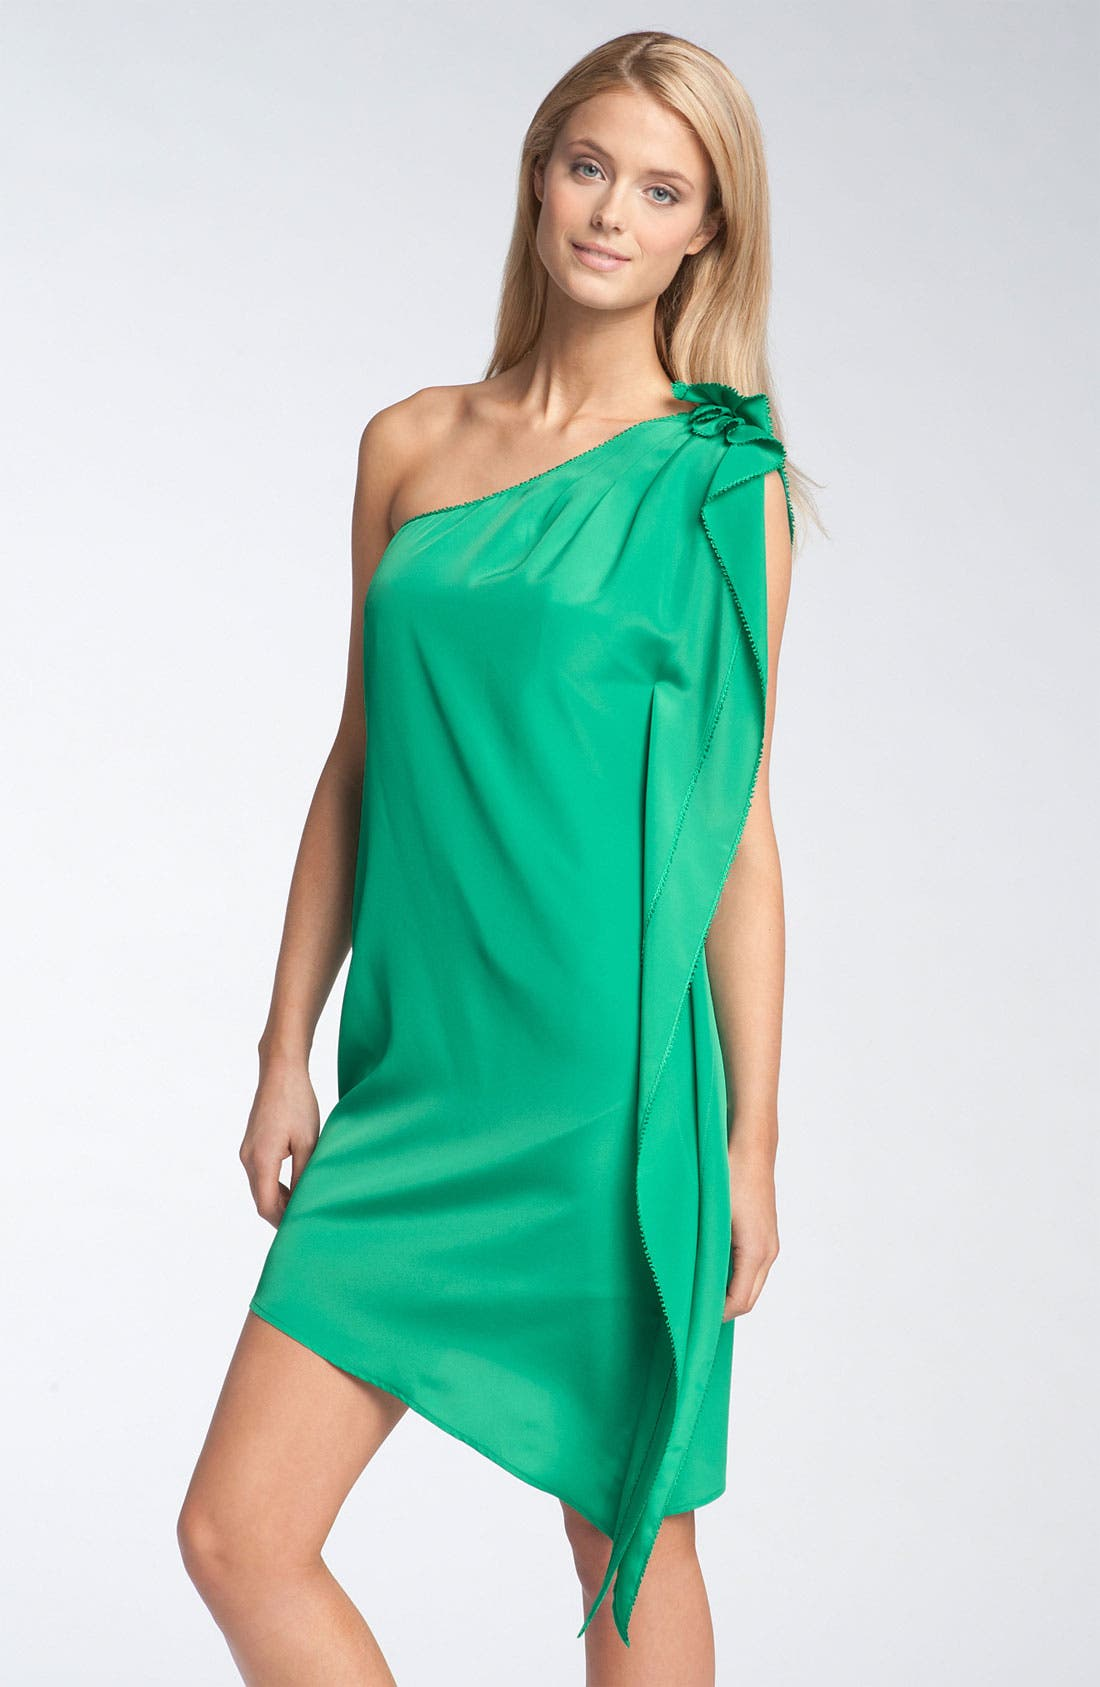 Alternate Image 1 Selected - Jessica Simpson One Shoulder Ruffle Dress